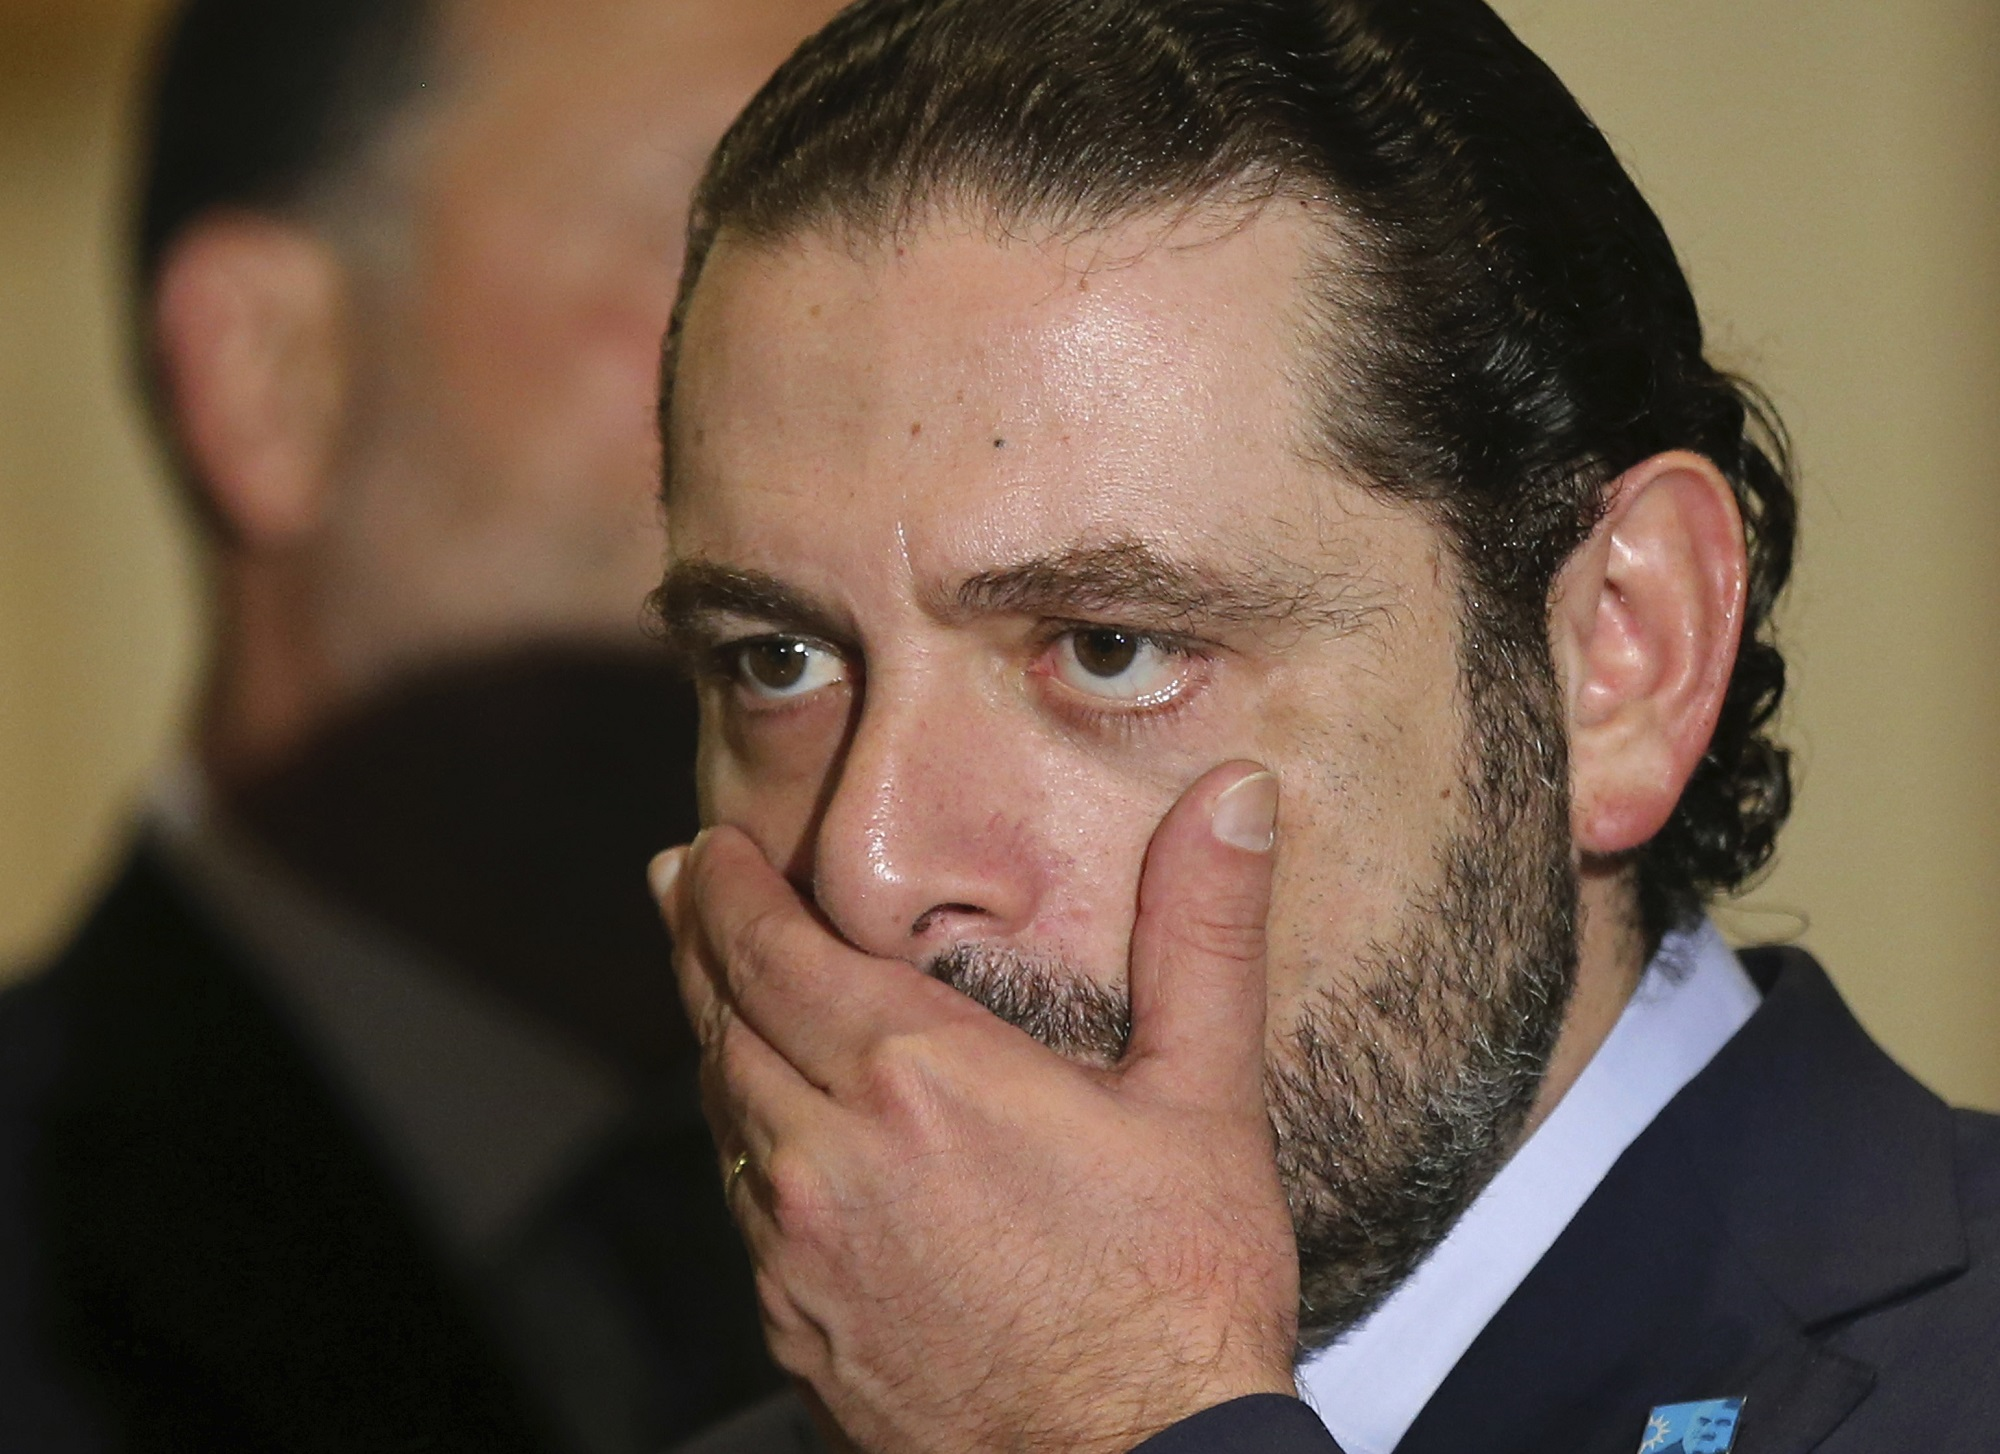 Hezbollah claims Lebanon prime minister forced to resign by Saudi Arabia